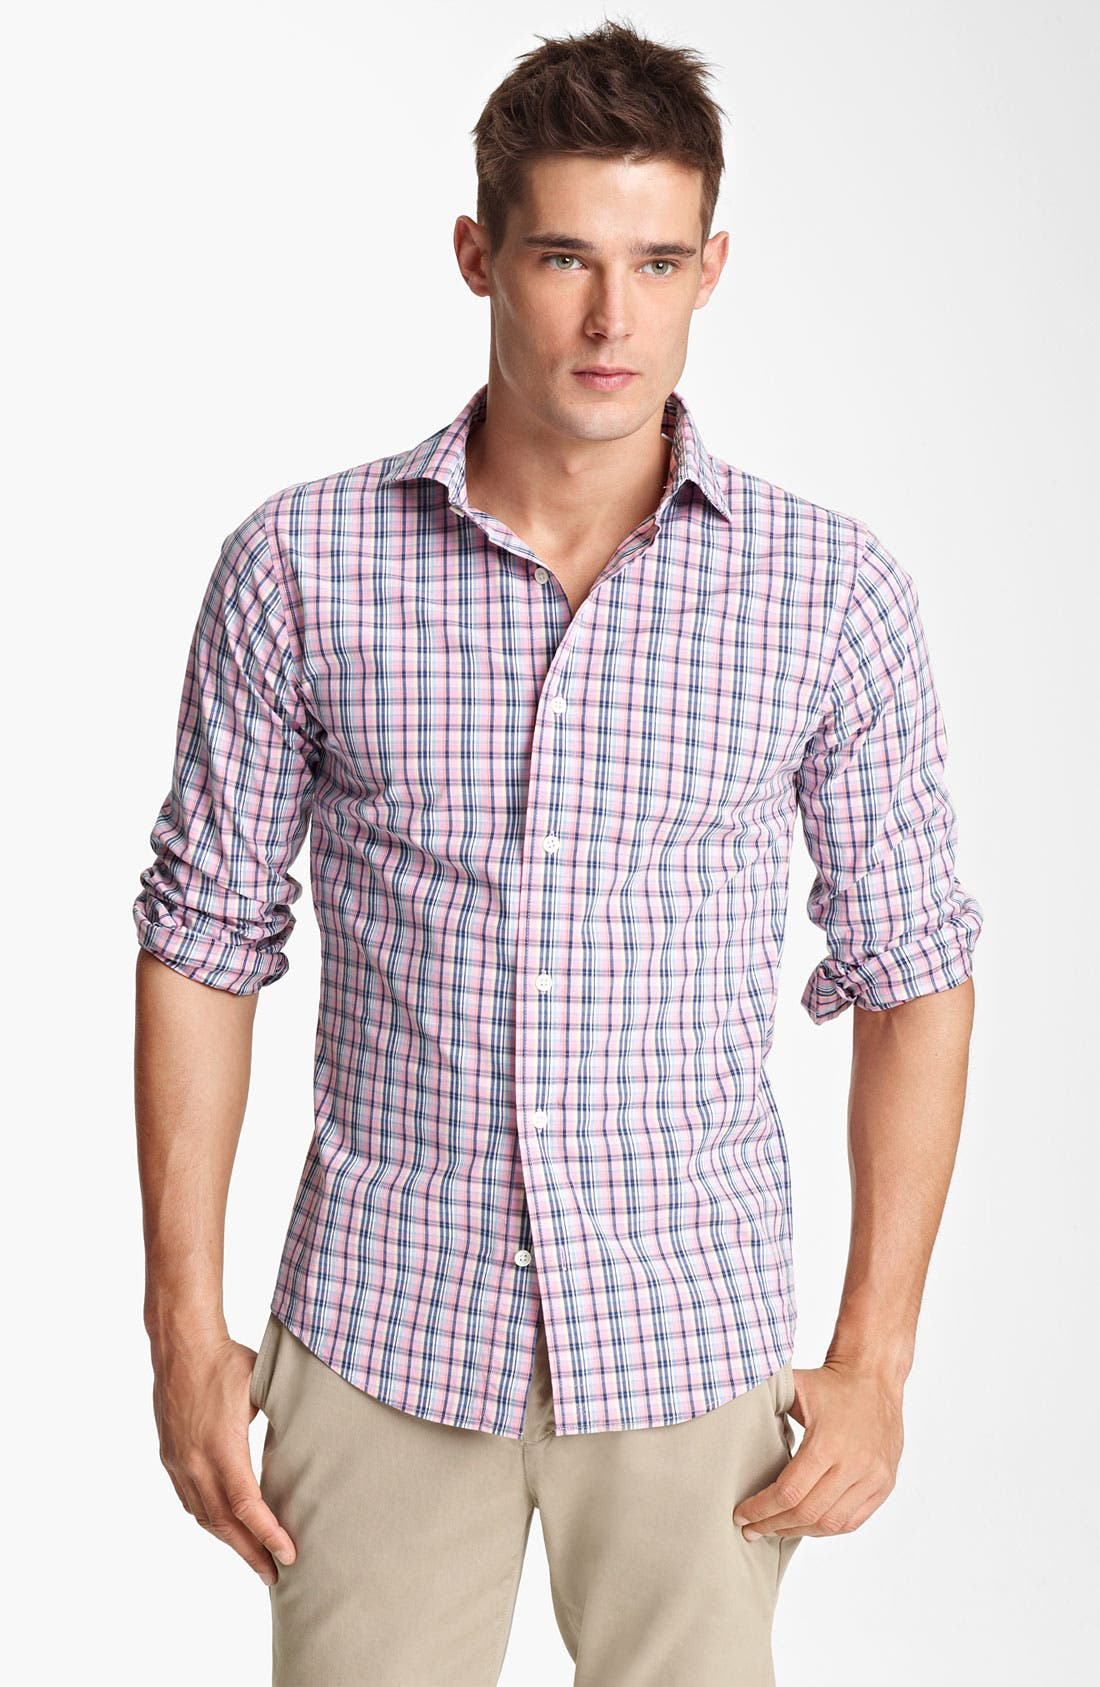 Alternate Image 1 Selected - Jack Spade 'Tally' Plaid Shirt